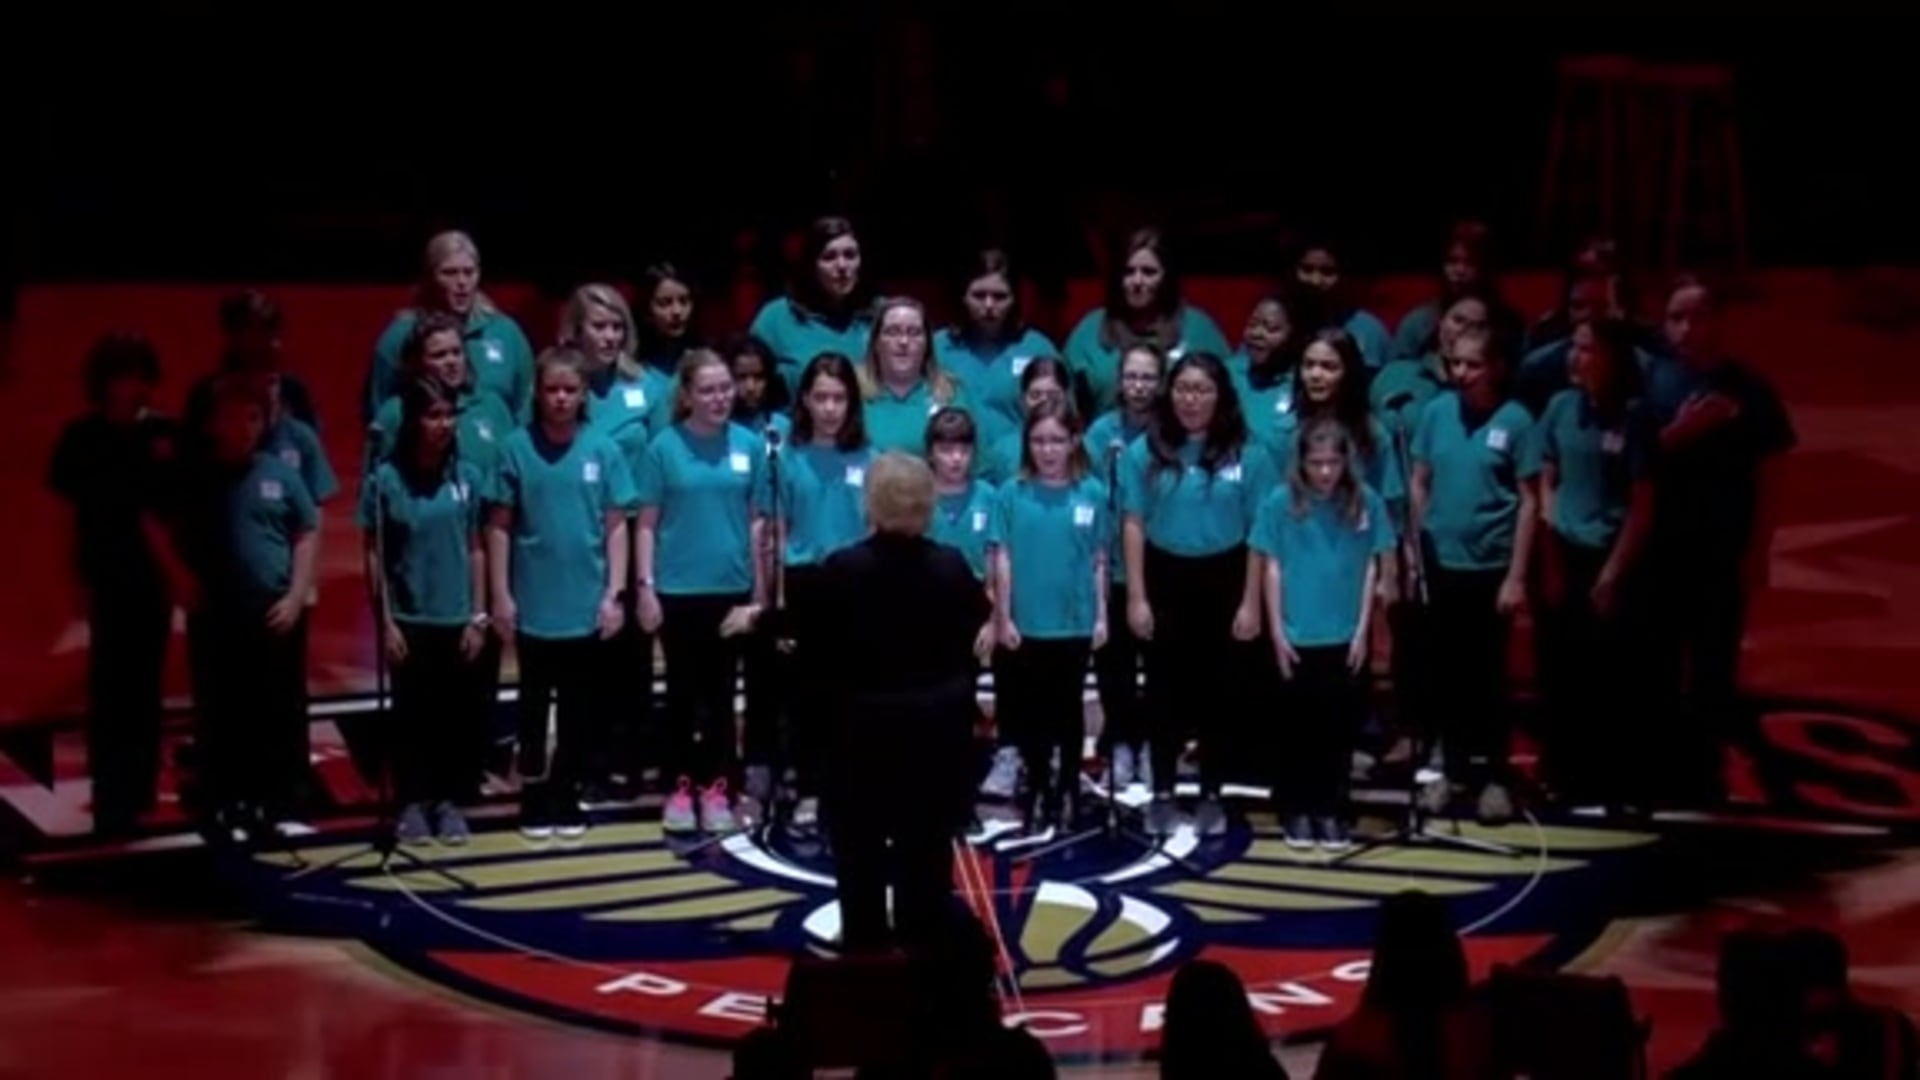 Entertainment: National Anthem performance by New Orleans Children's Choir – January 22 vs. San Antonio Spurs